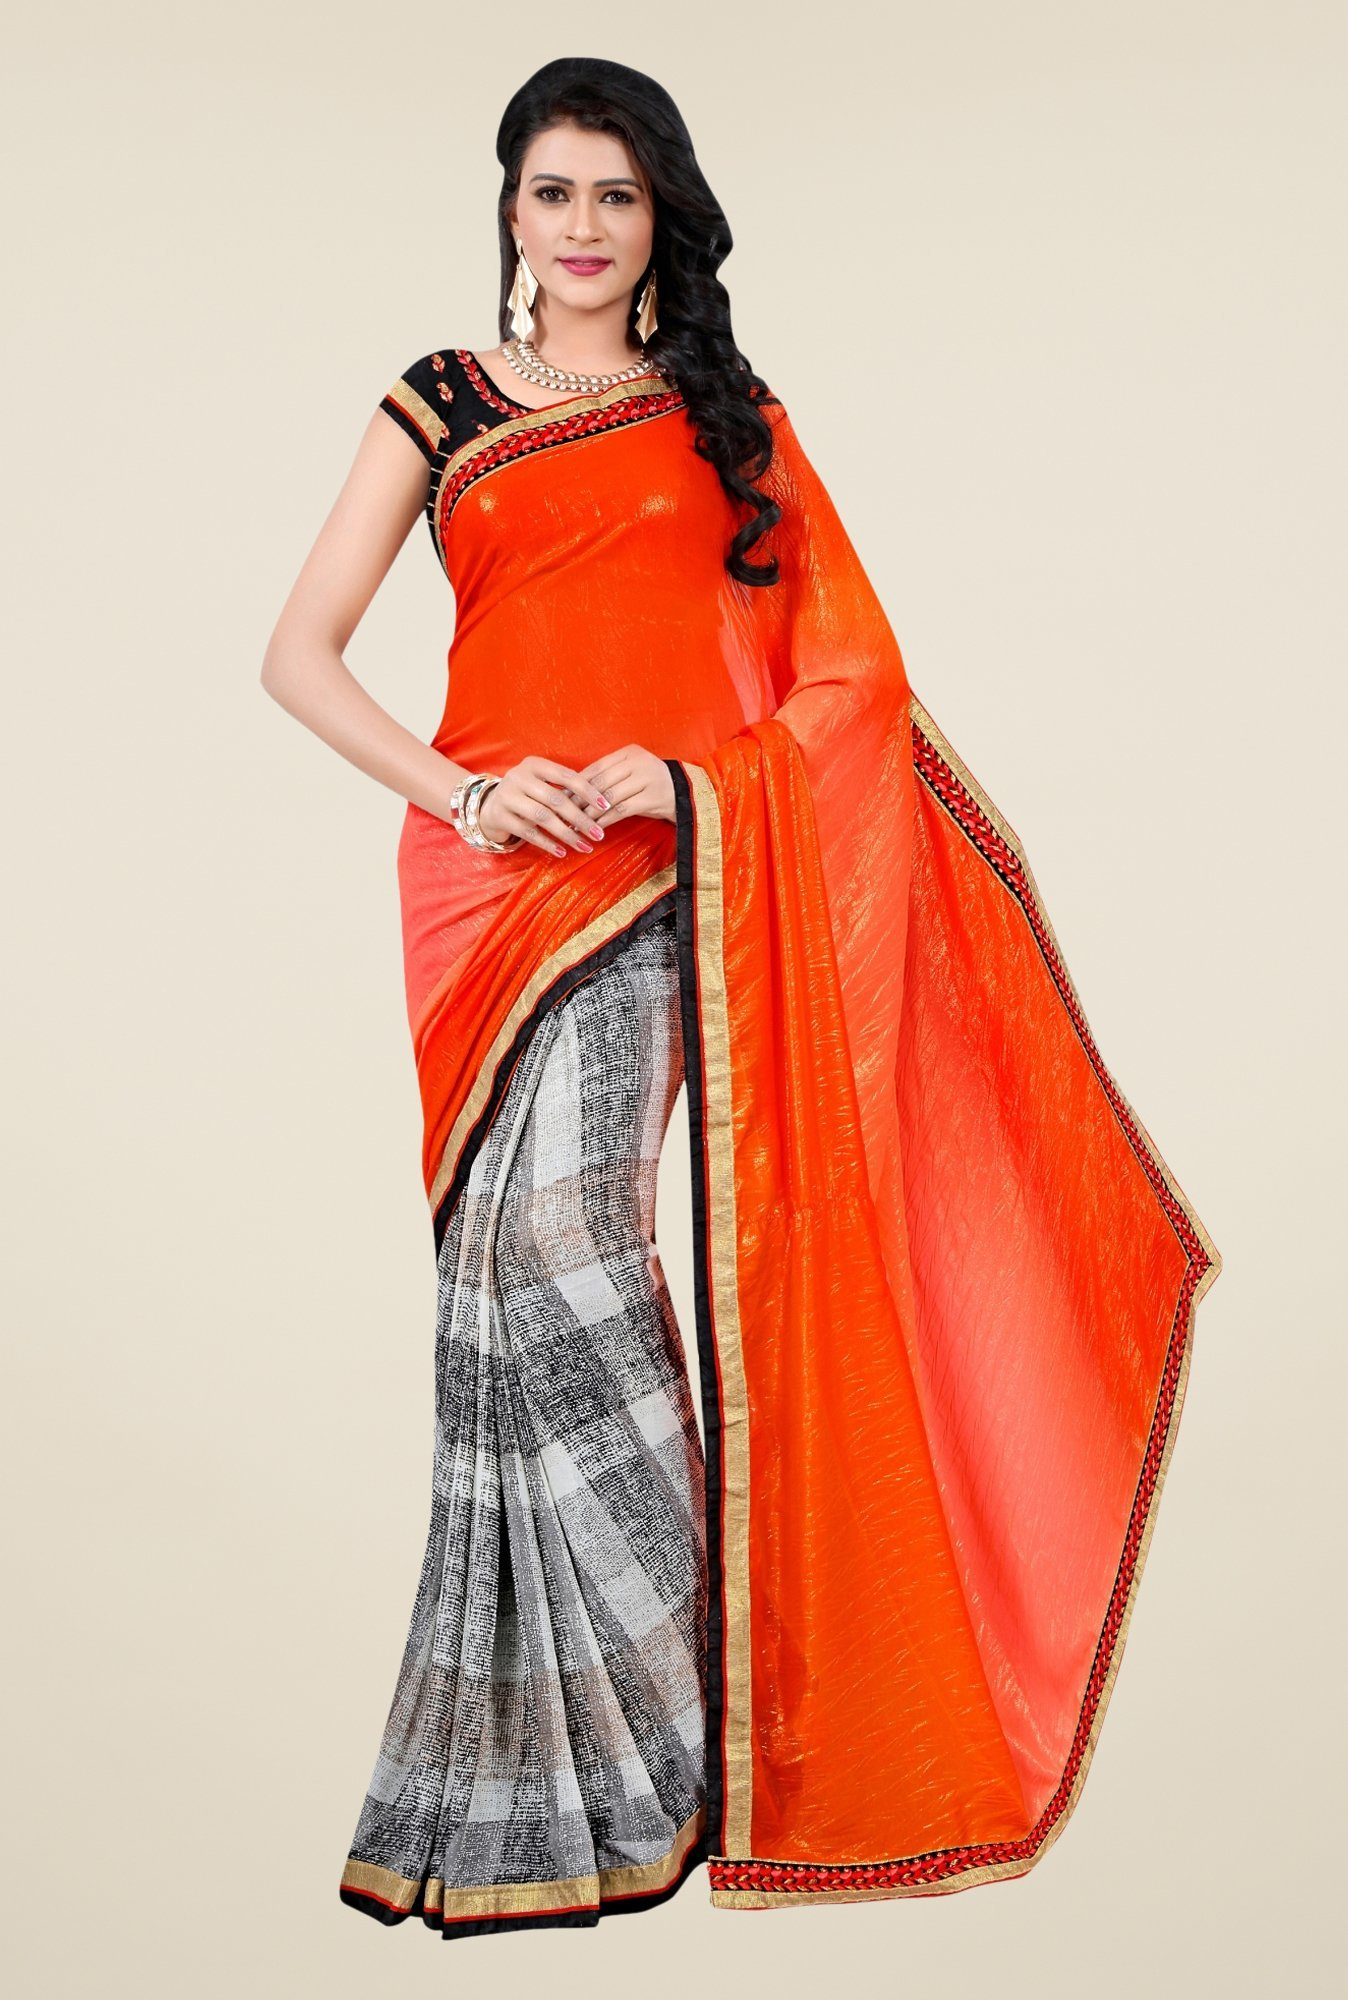 Triveni Off White & Orange Printed Faux Georgette Saree